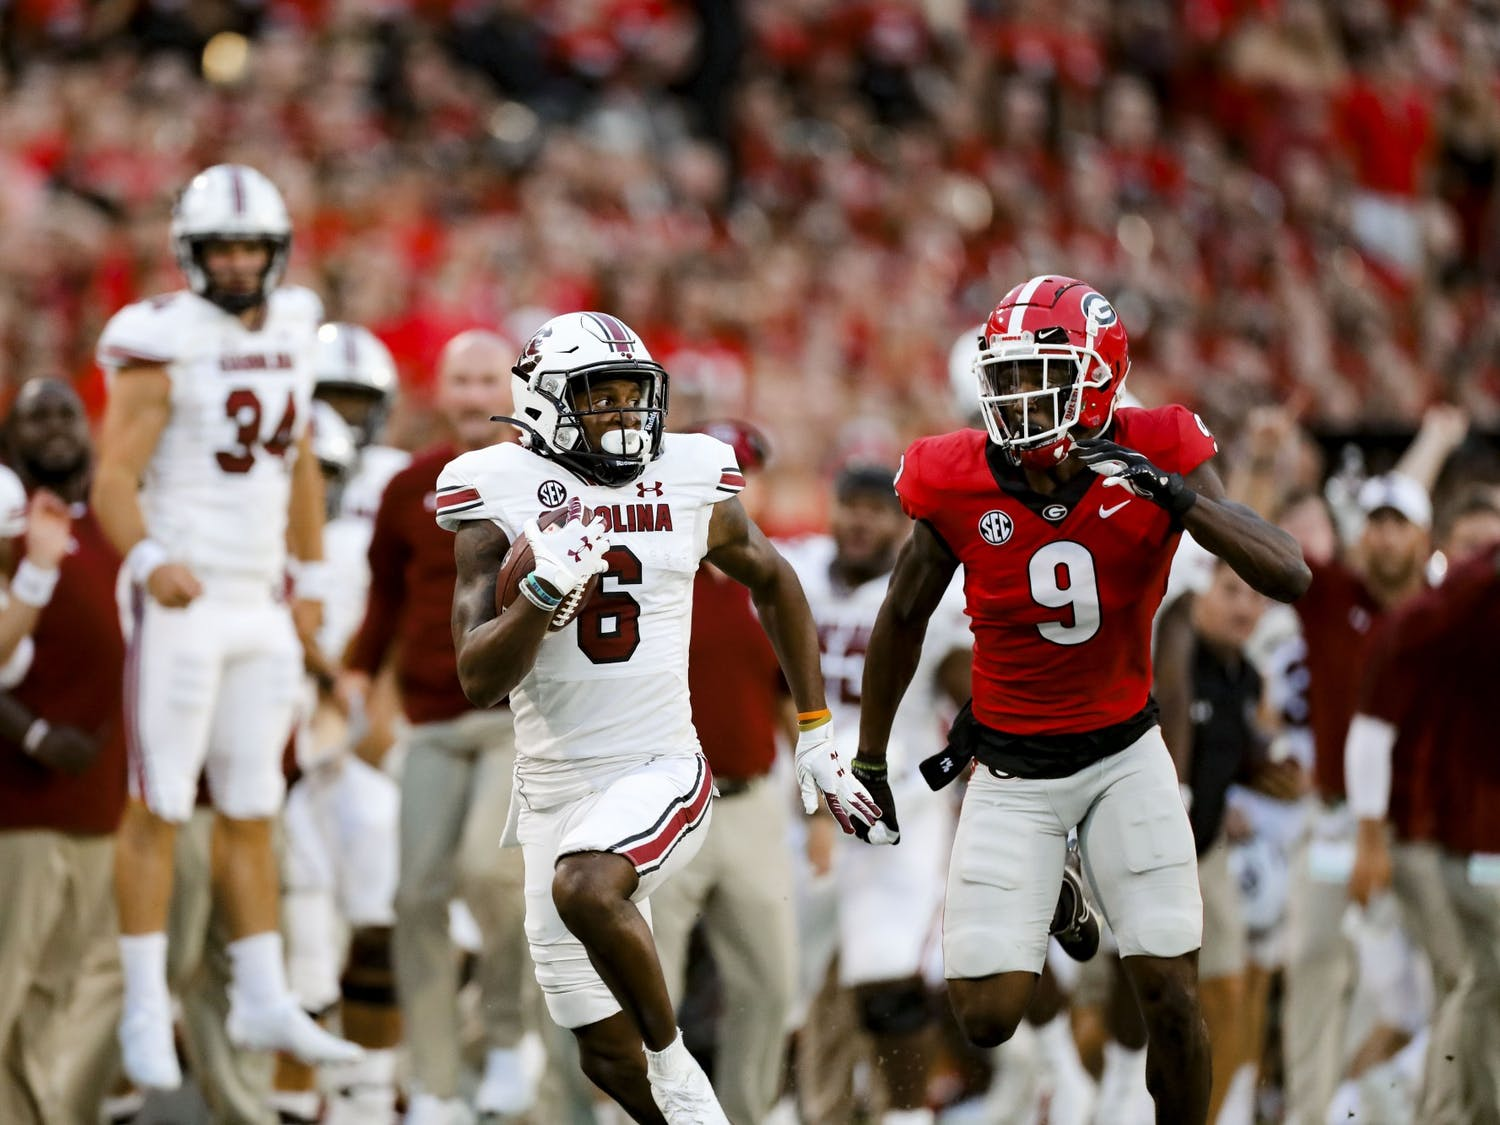 Senior wide receiver Josh Vann runs a breakout play in the first quarter of South Carolina's game against Georgia on Sept. 18, 2021.